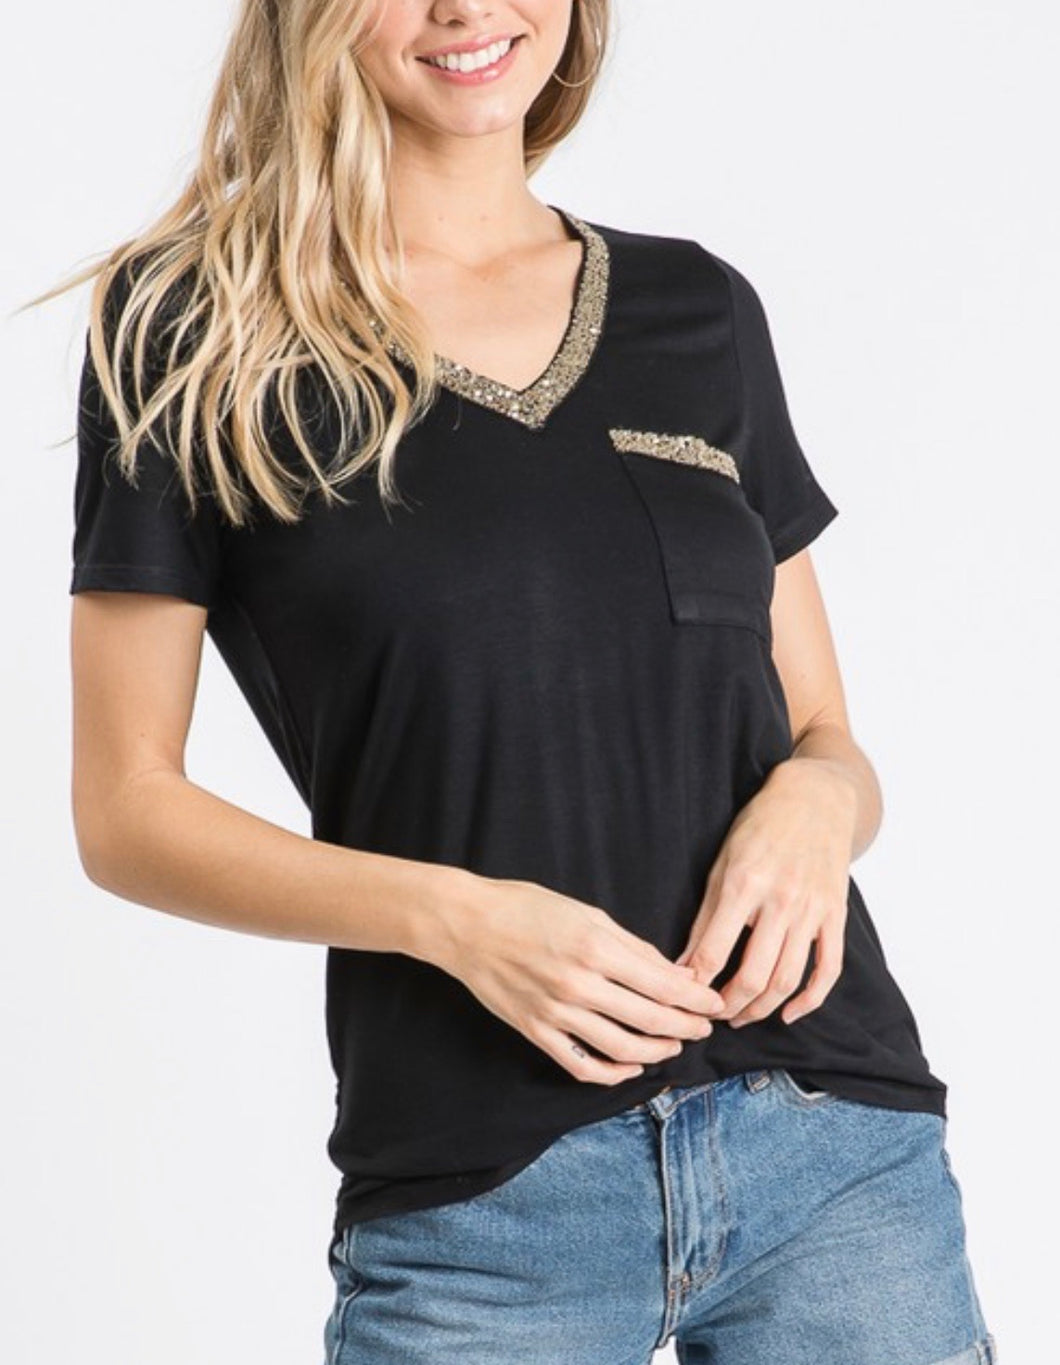 V NECK POCKET TOP